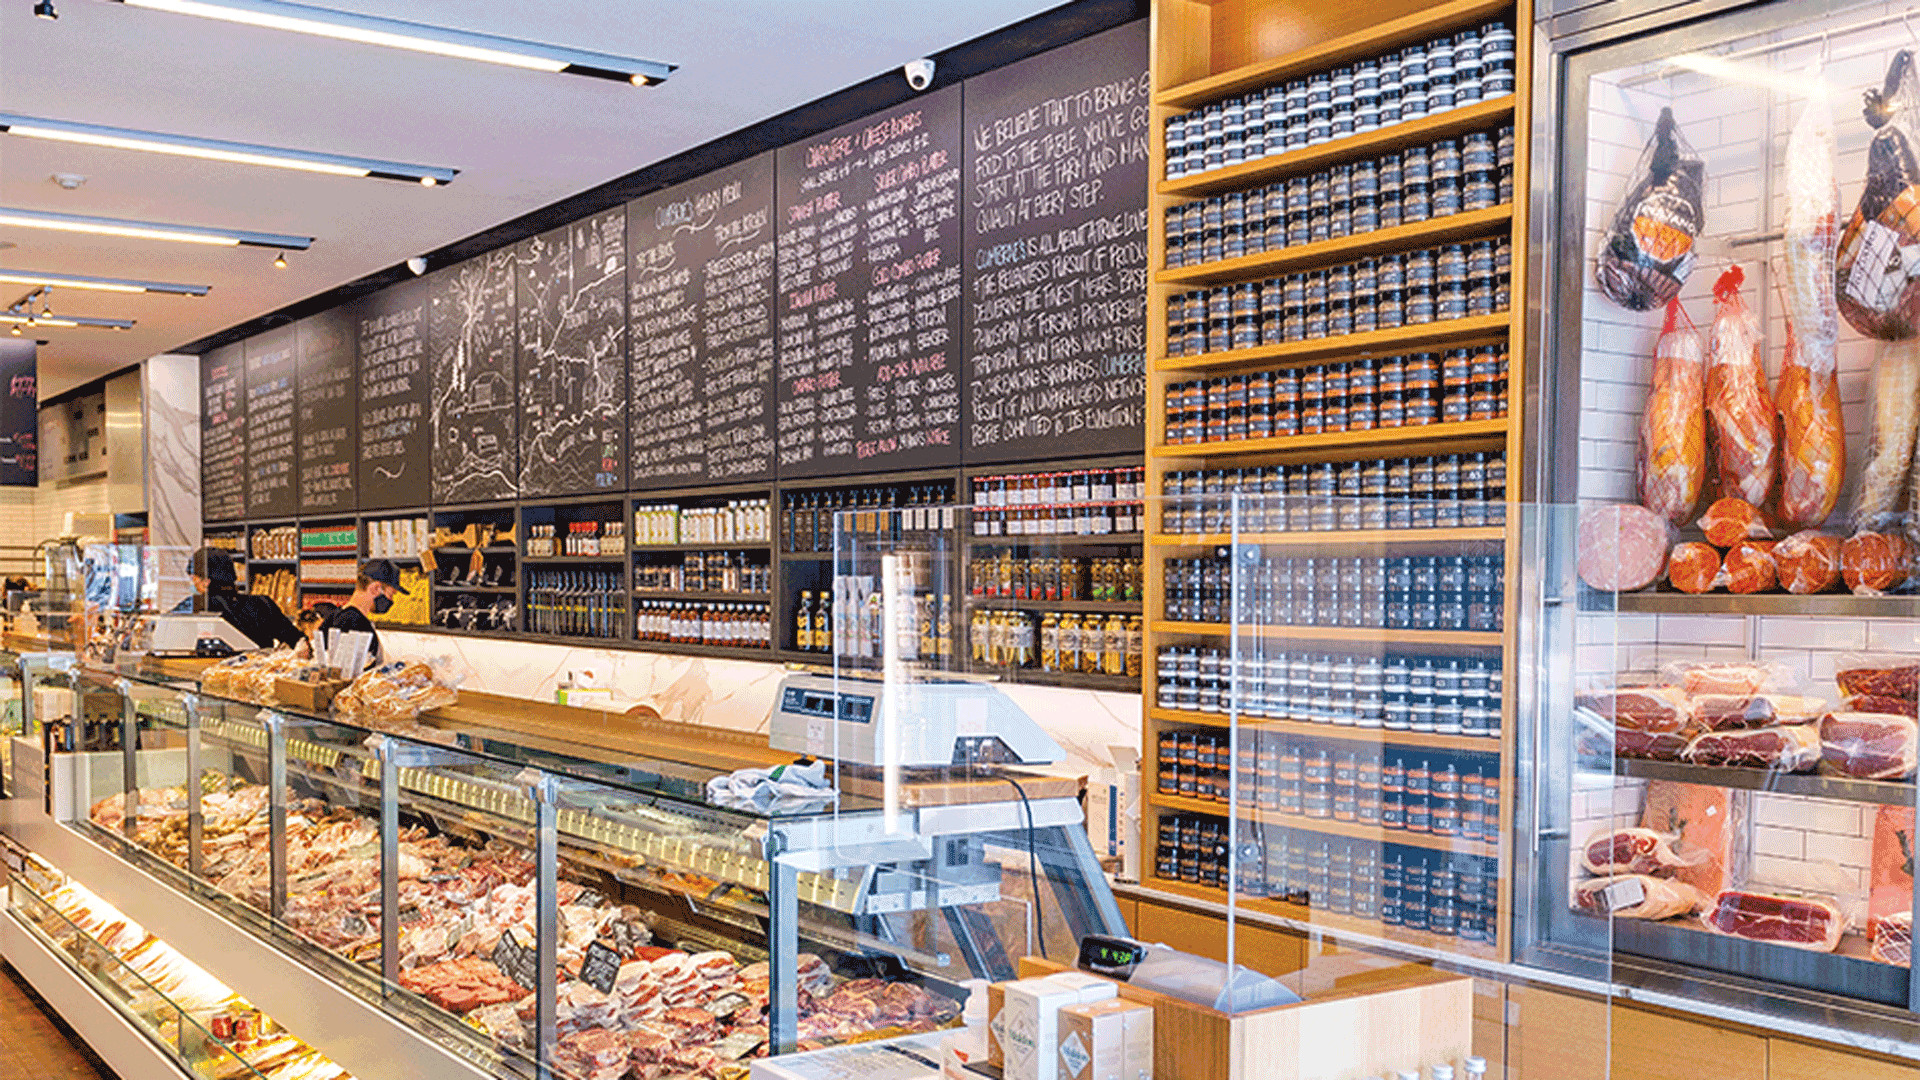 Top Toronto butcher shops for high-quality meat | Cumbraes on Queen St.